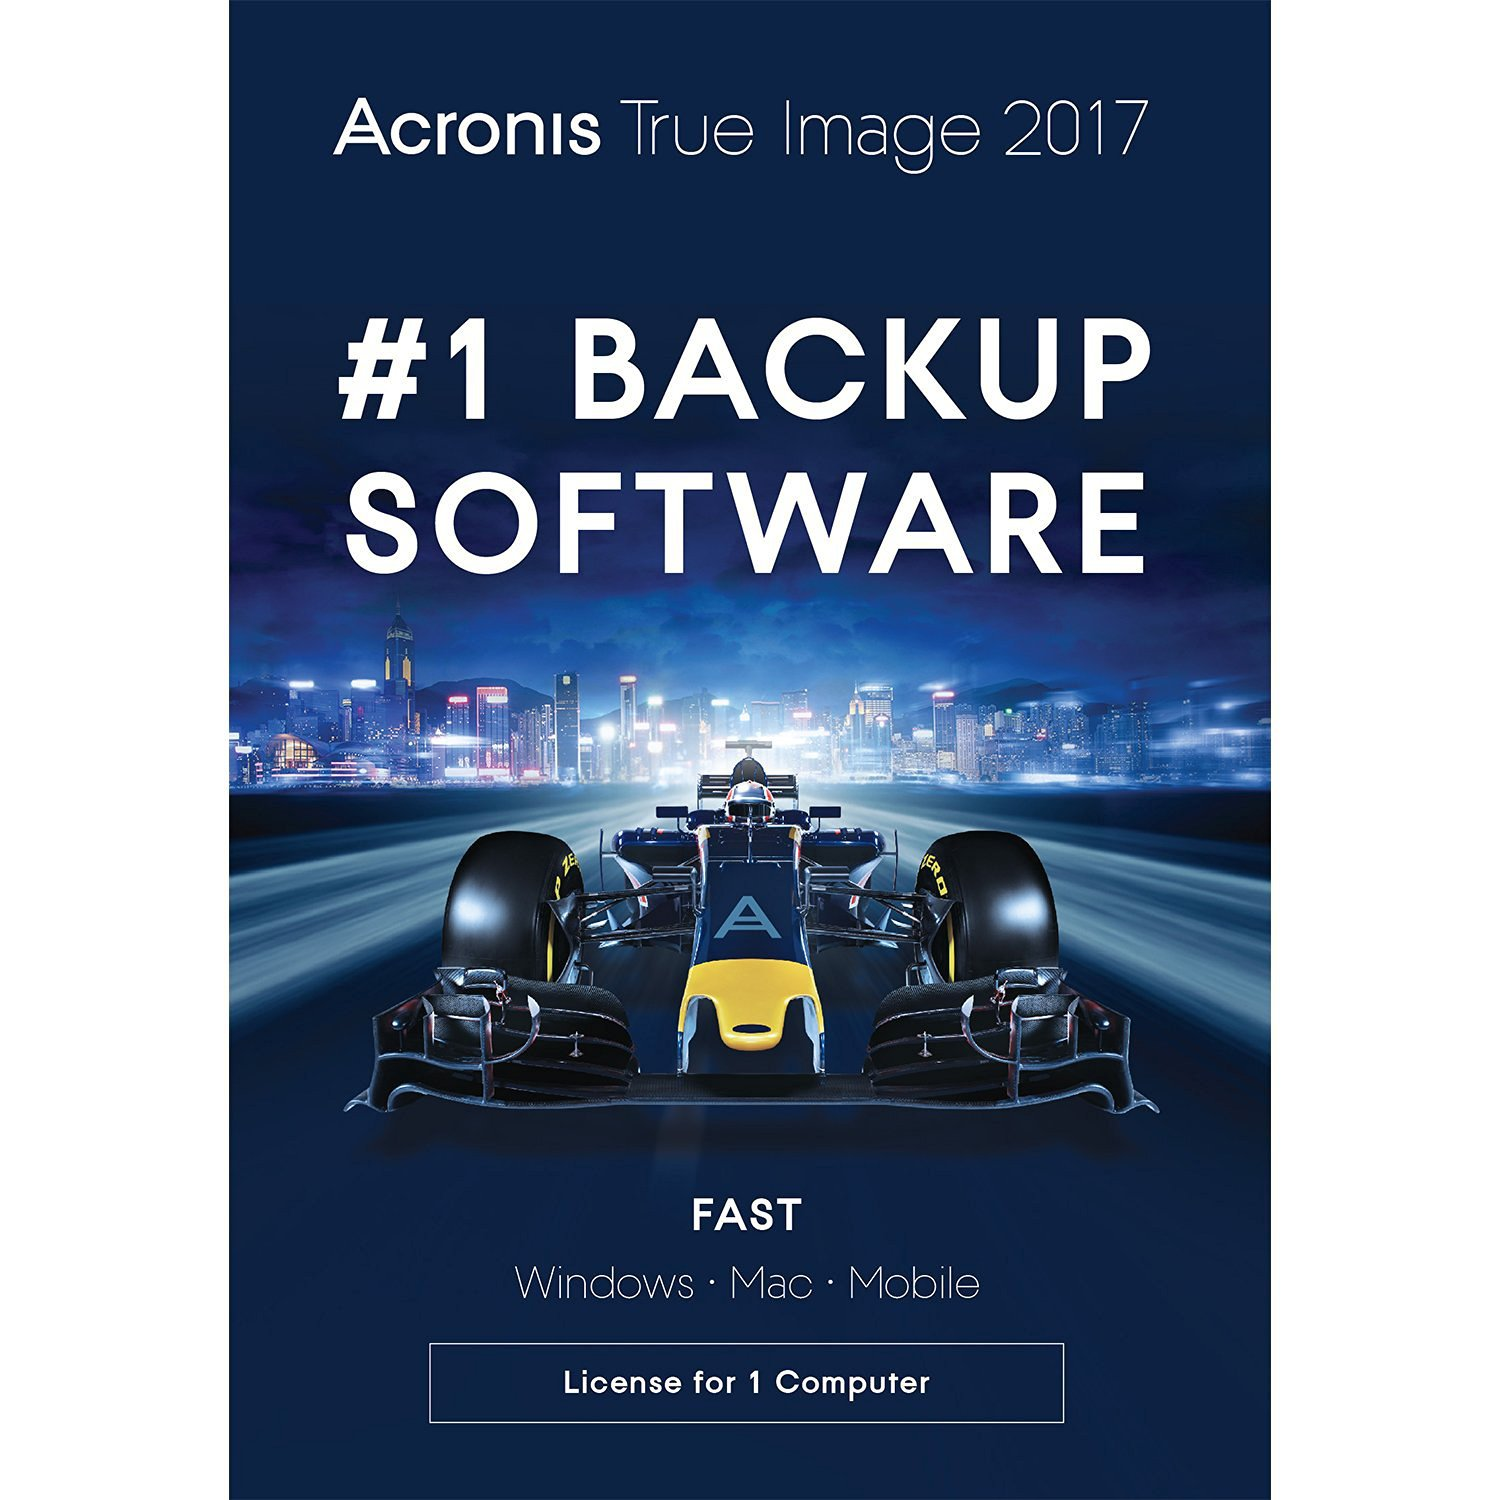 Acronis True Image 2015 / 2016 / 2017 for 1 PC or Mac Device Full Version